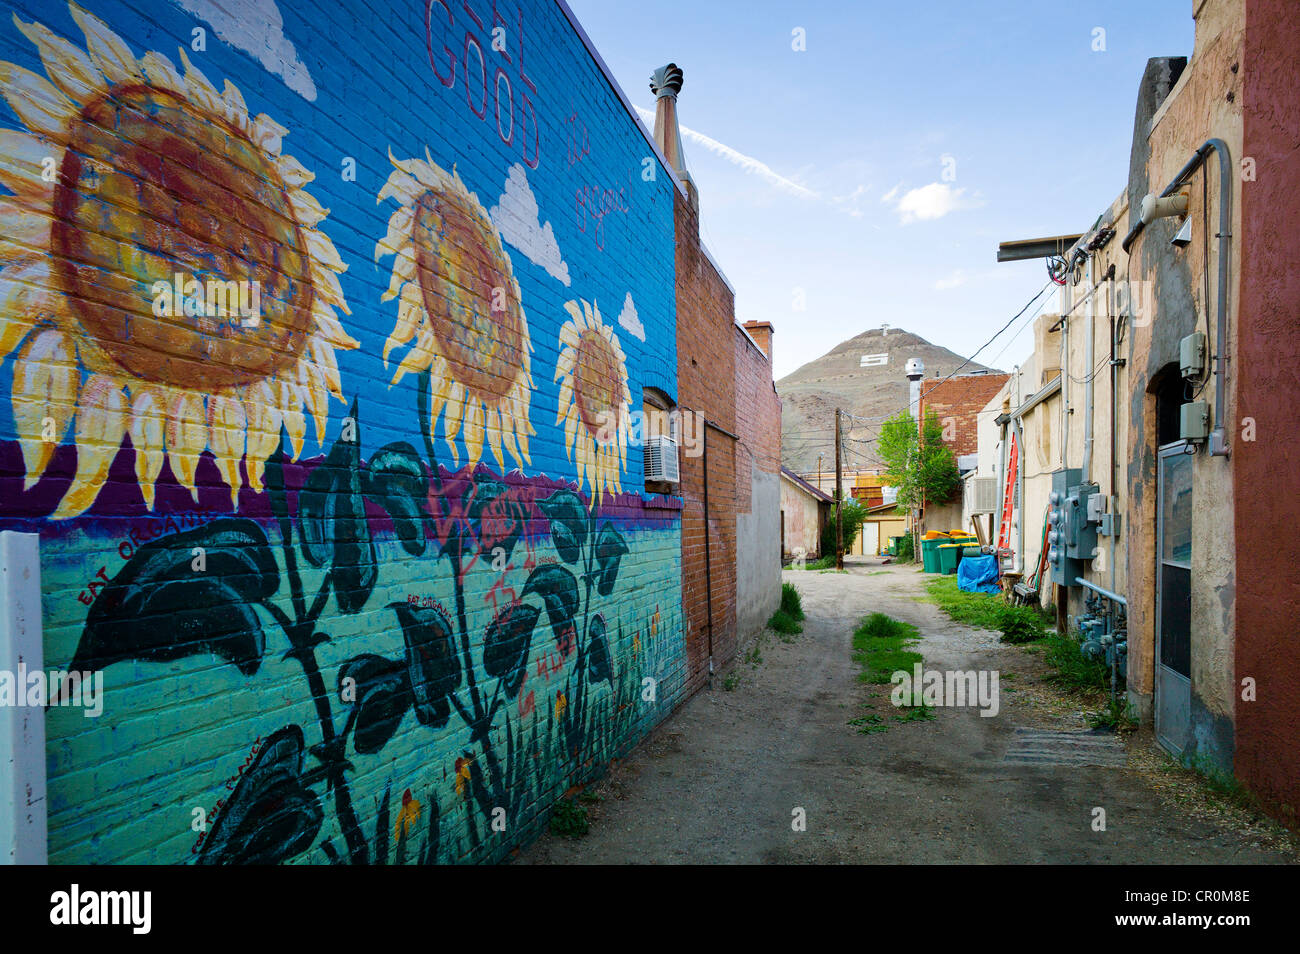 colorful murals painted on the brick wall of a building in